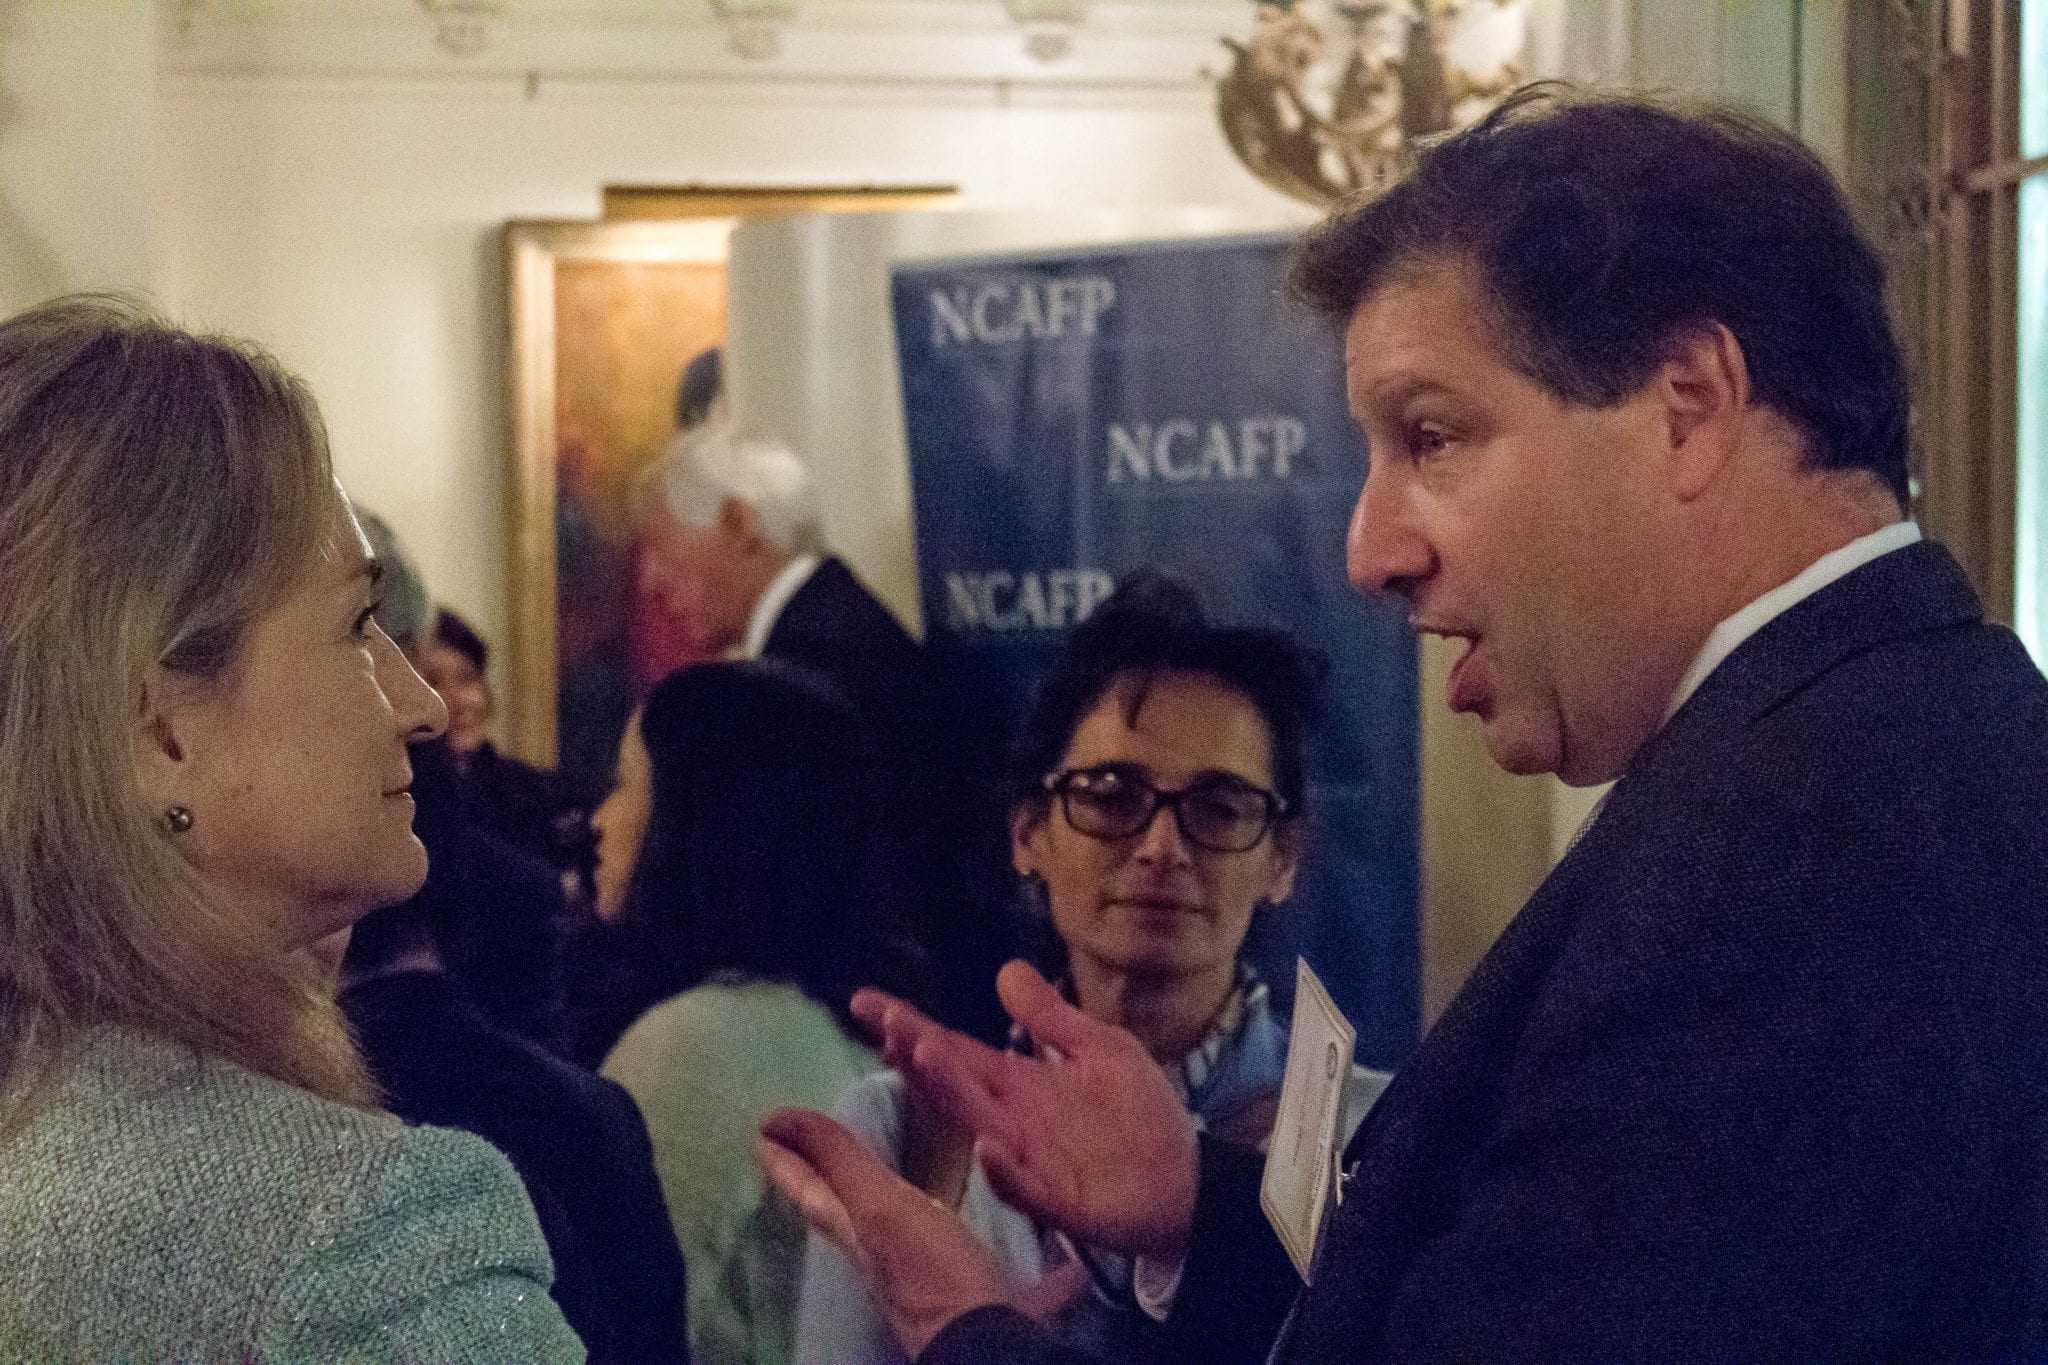 Gideon Rose engages with NCAFP guests